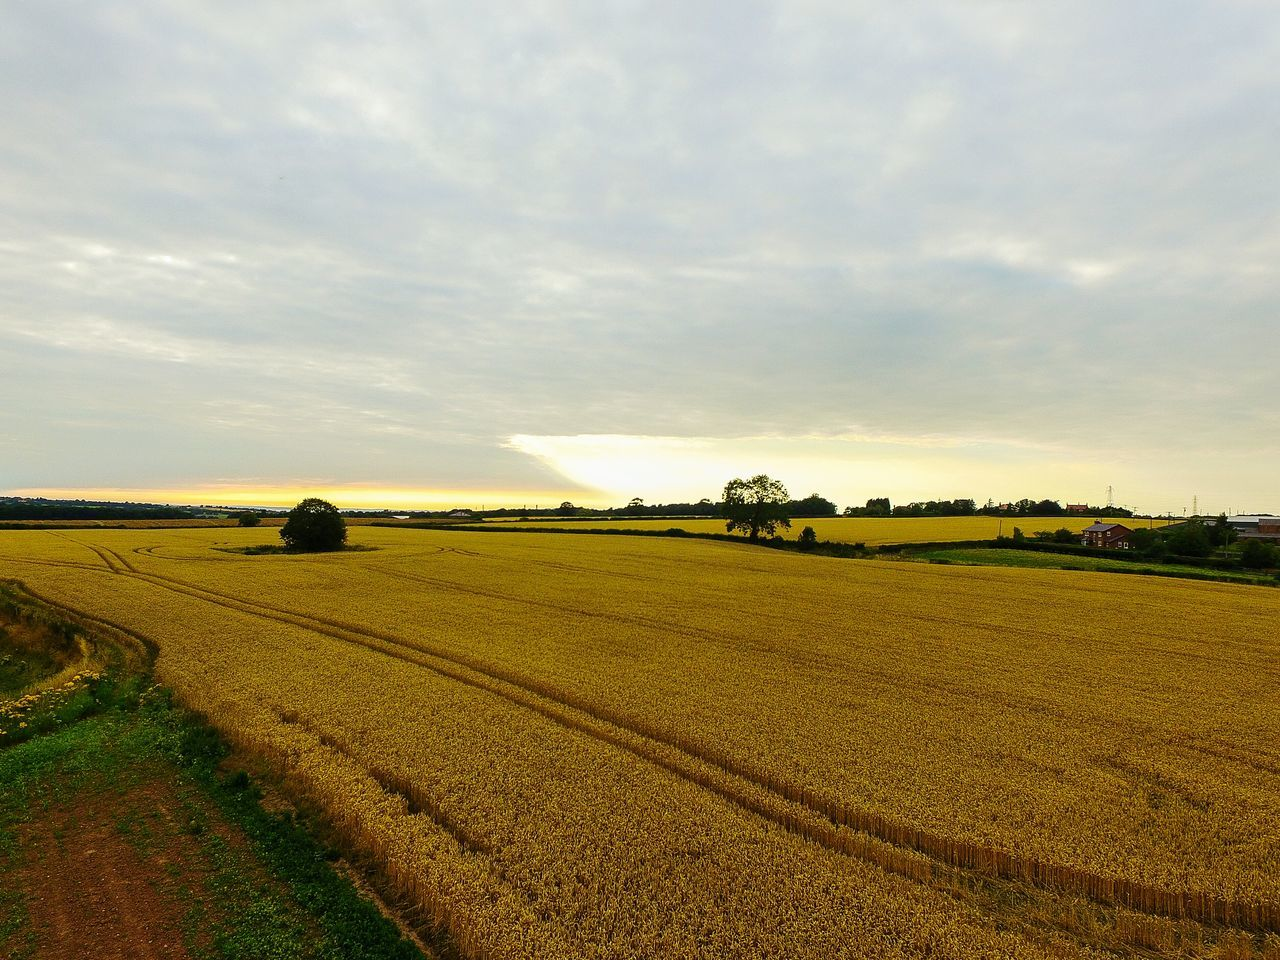 Golden Field Corn Field Sky And Clouds Harvest Time Tree Tracks @ Aston Cheshire